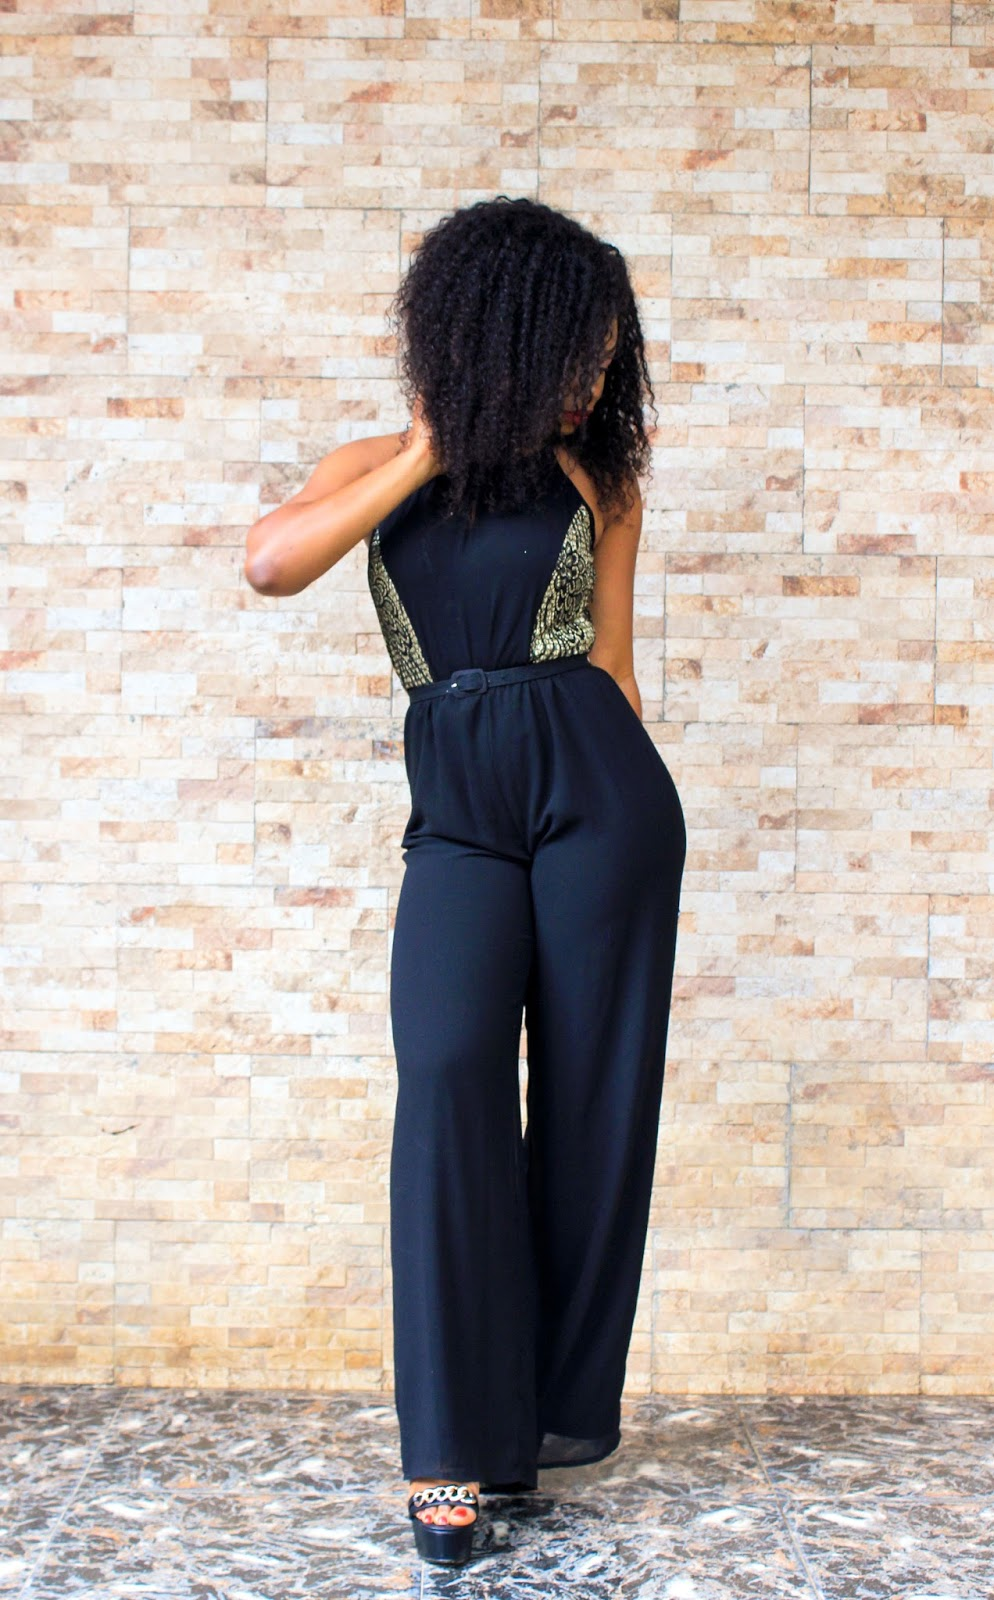 RETRO IN JUMPSUIT - Boohoo Black jumpsuit